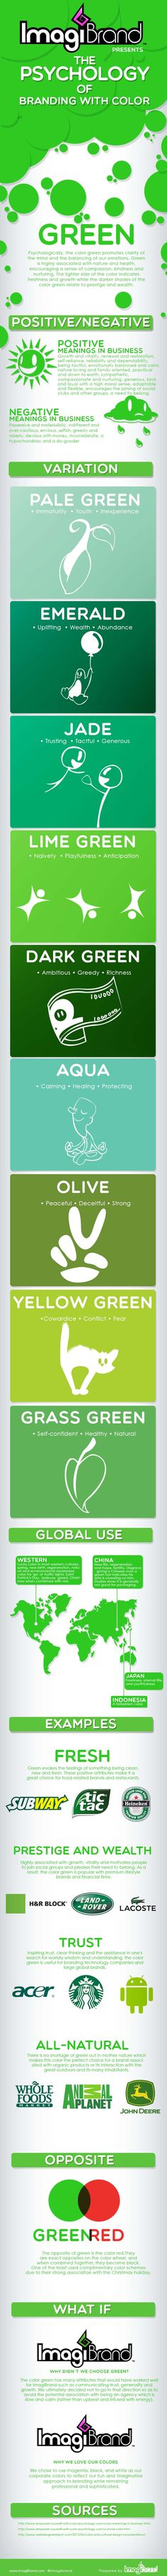 The Psychology of GREEN #Branding by Richie Kawamoto #SM4Biz #contentmarketing #infographic